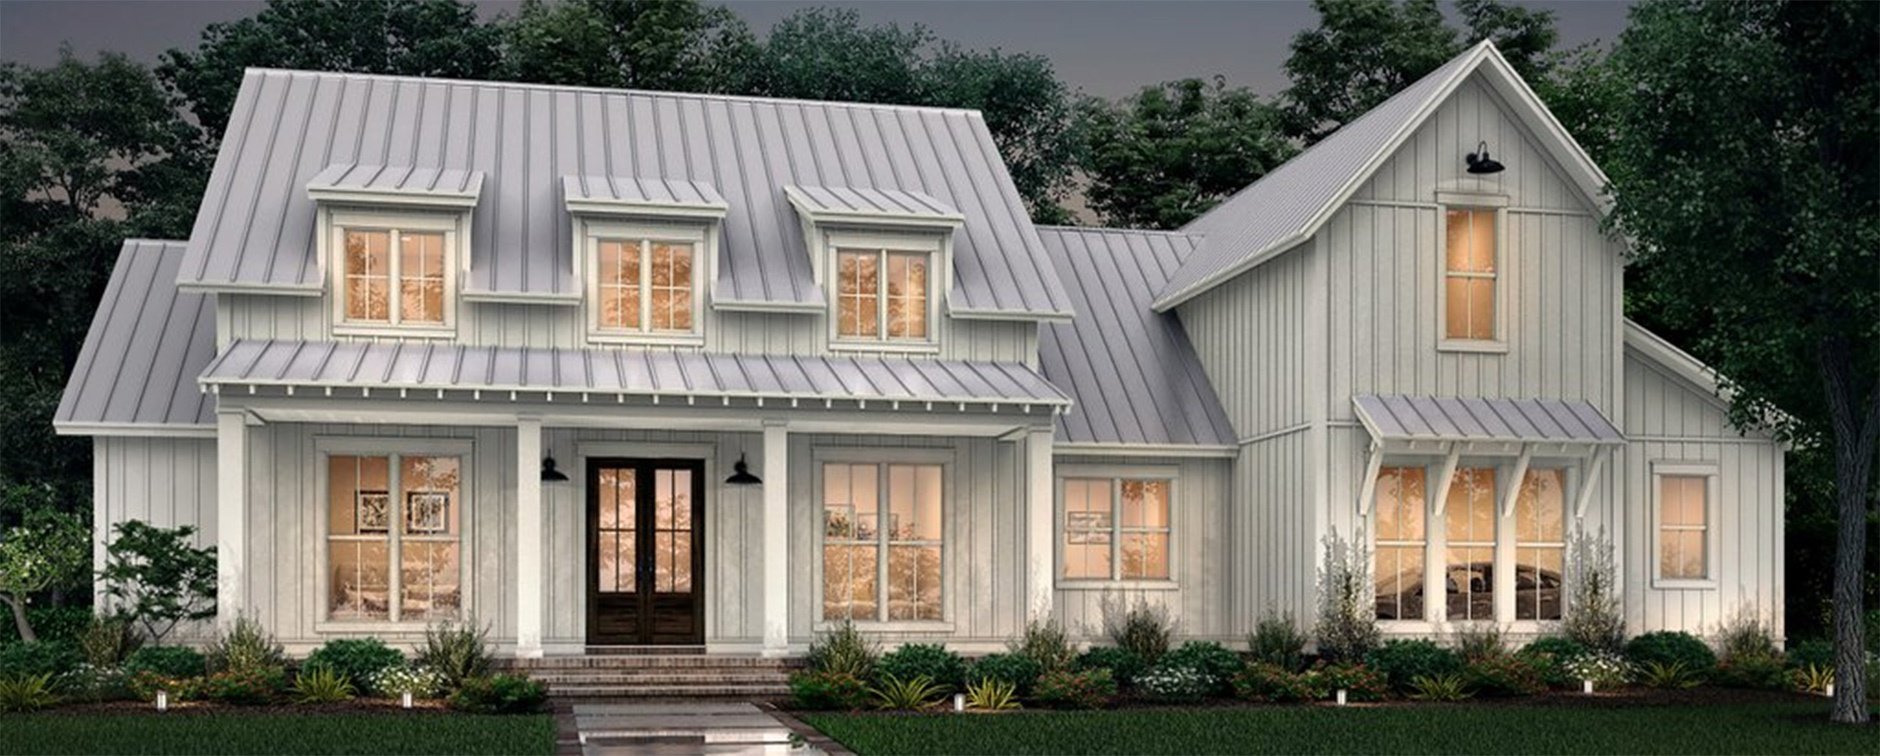 Explore 2 Story Farmhouse Plans